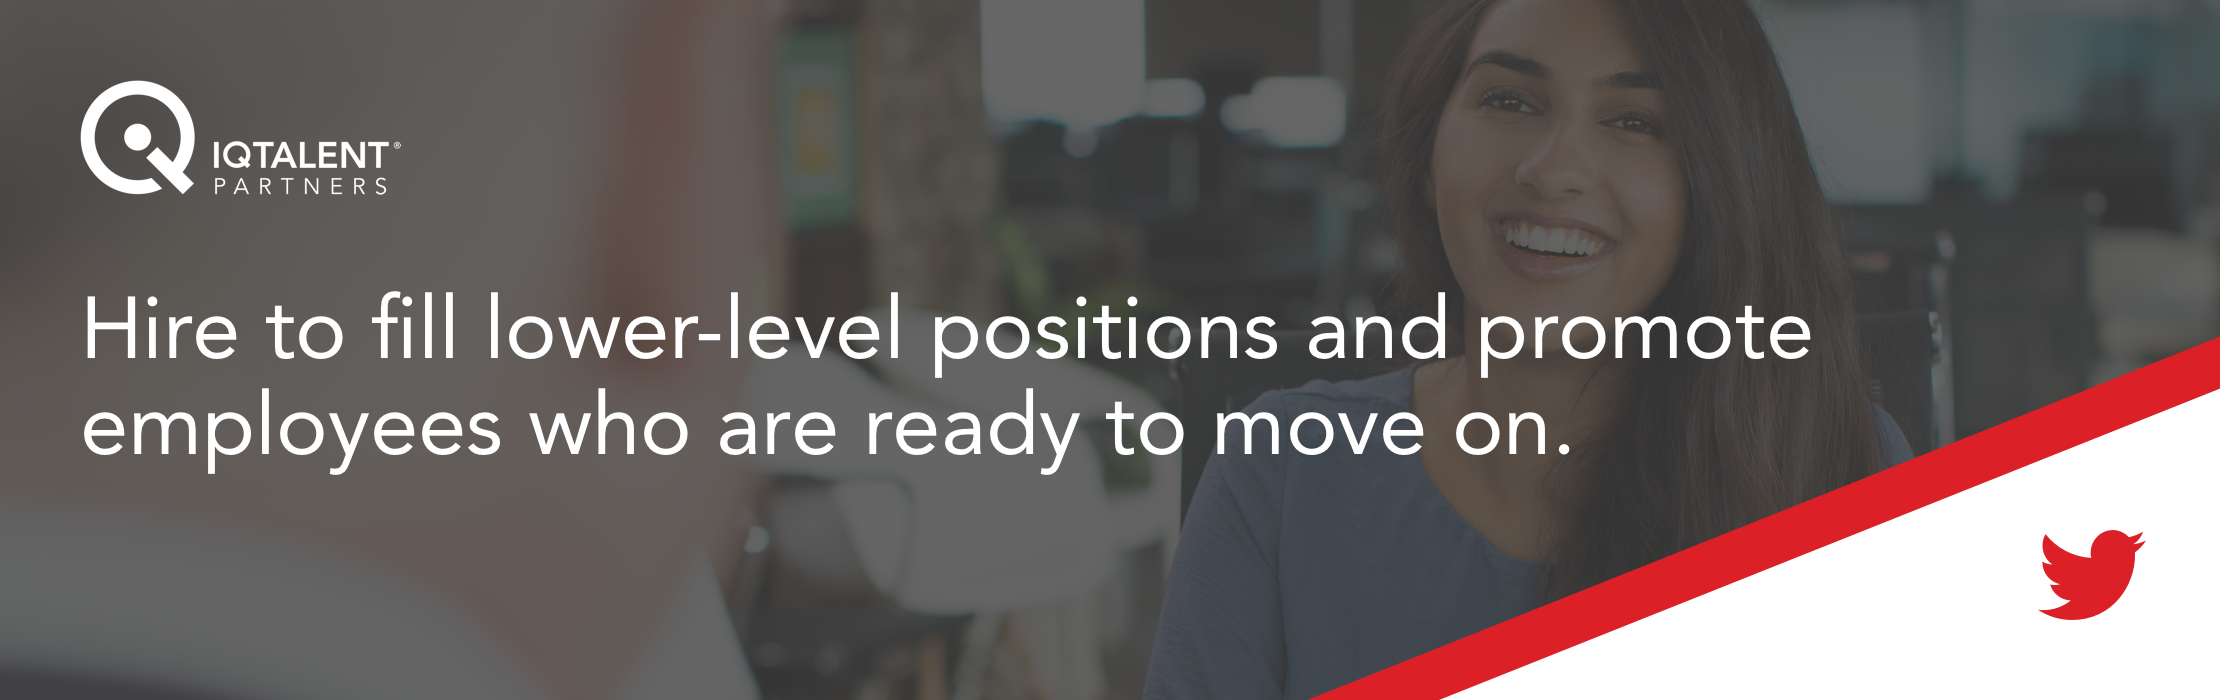 Hire to fill lower-level positions and promote employees who are ready to move on.